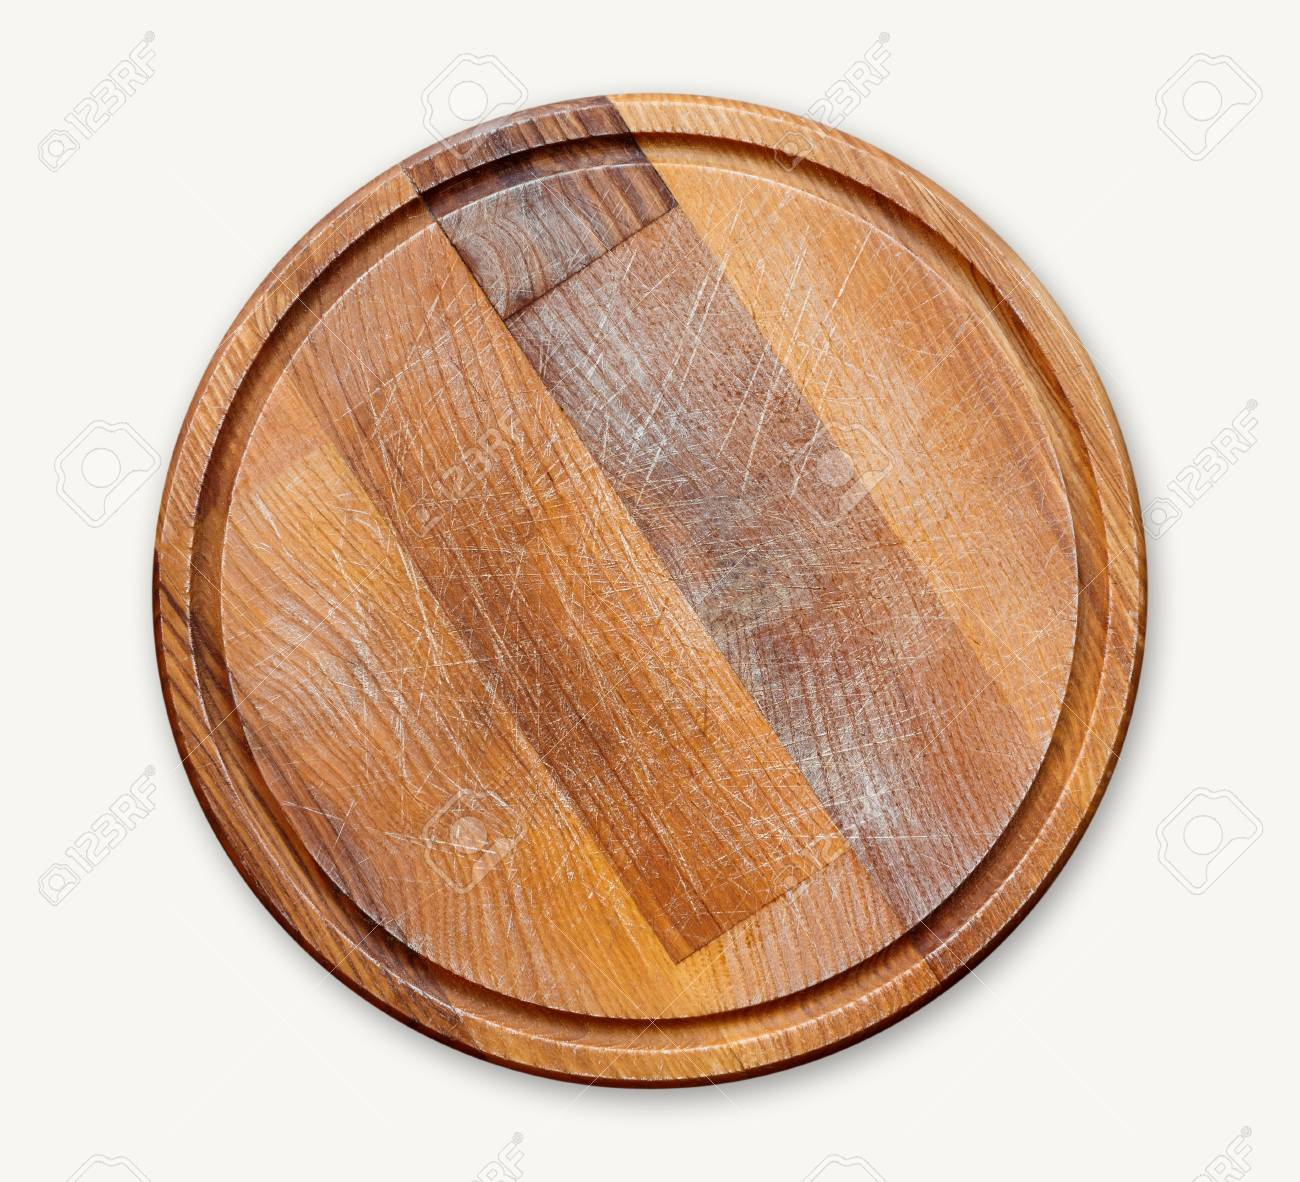 Round Wooden Cutting Board Isolated On White Background Closeup Stock Photo Picture And Royalty Free Image Image 93834353